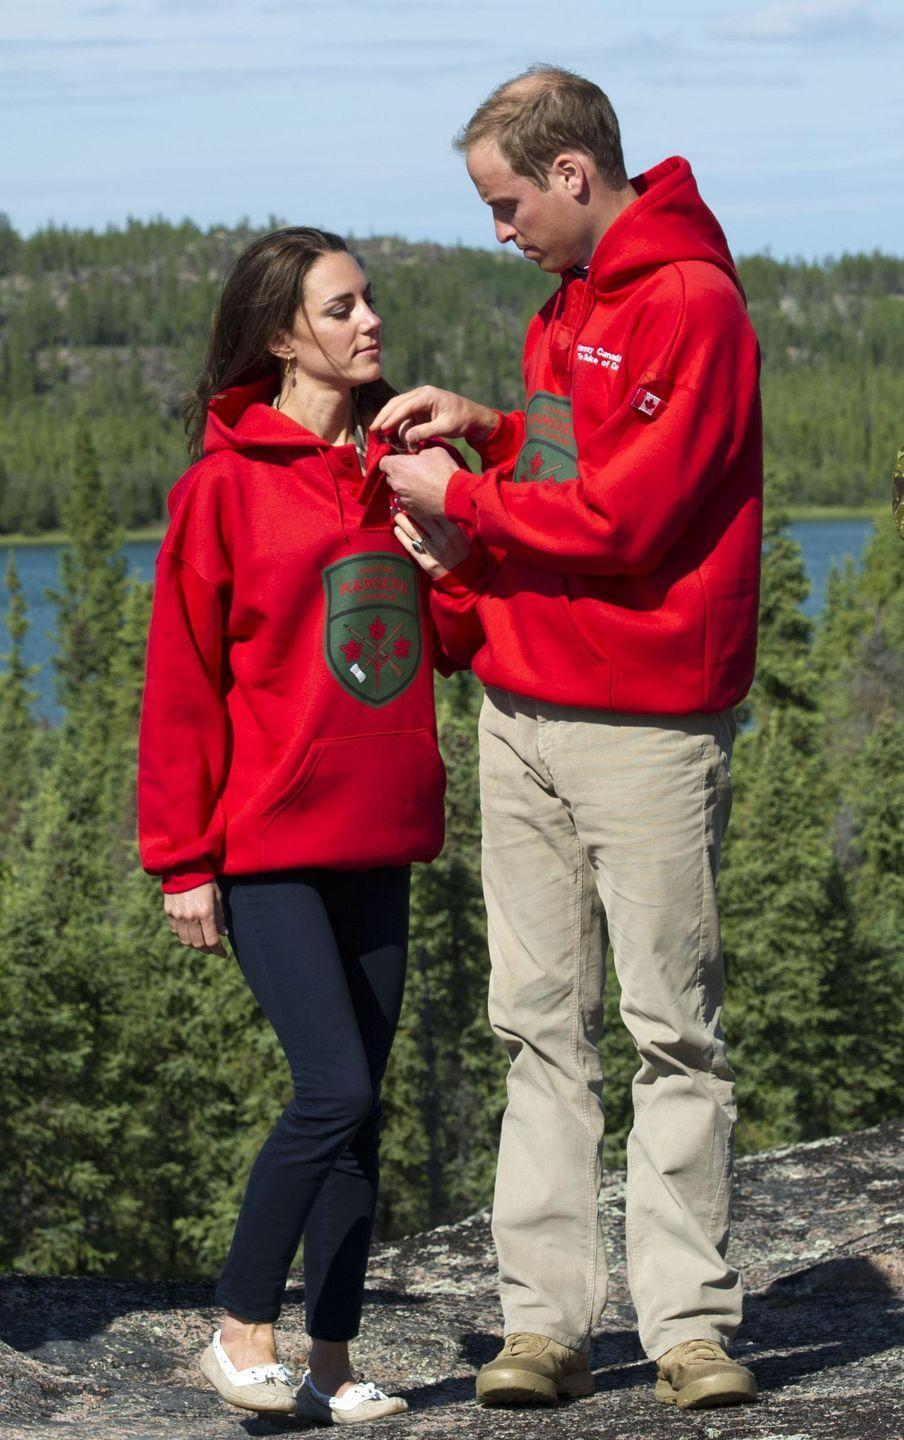 <p>Months after their royal wedding, the newlyweds wore matching Canadian Rangers jumpers after being made honourary members in Blatchford Lake, Northwest Territories, Canada. The trip marked their first official holiday as a married couple, July 2011 .</p>